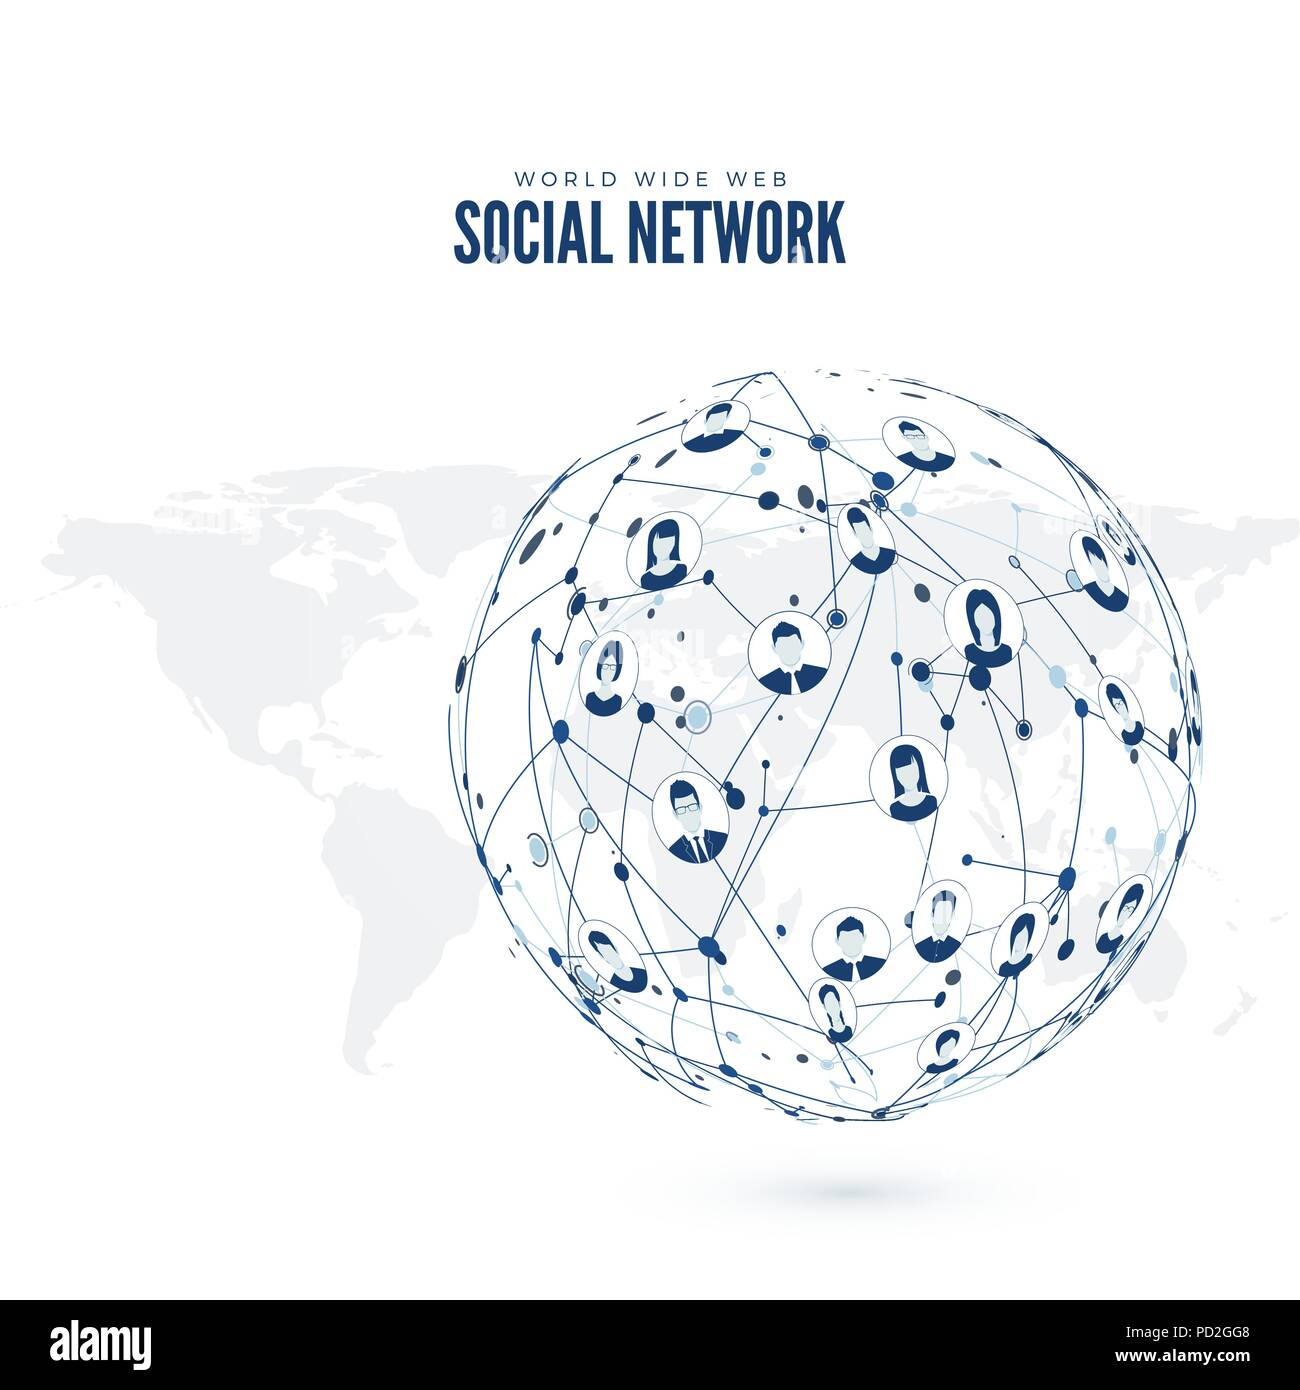 Social Network. World Wide Web. Vector illustration on Earth map - Stock Image